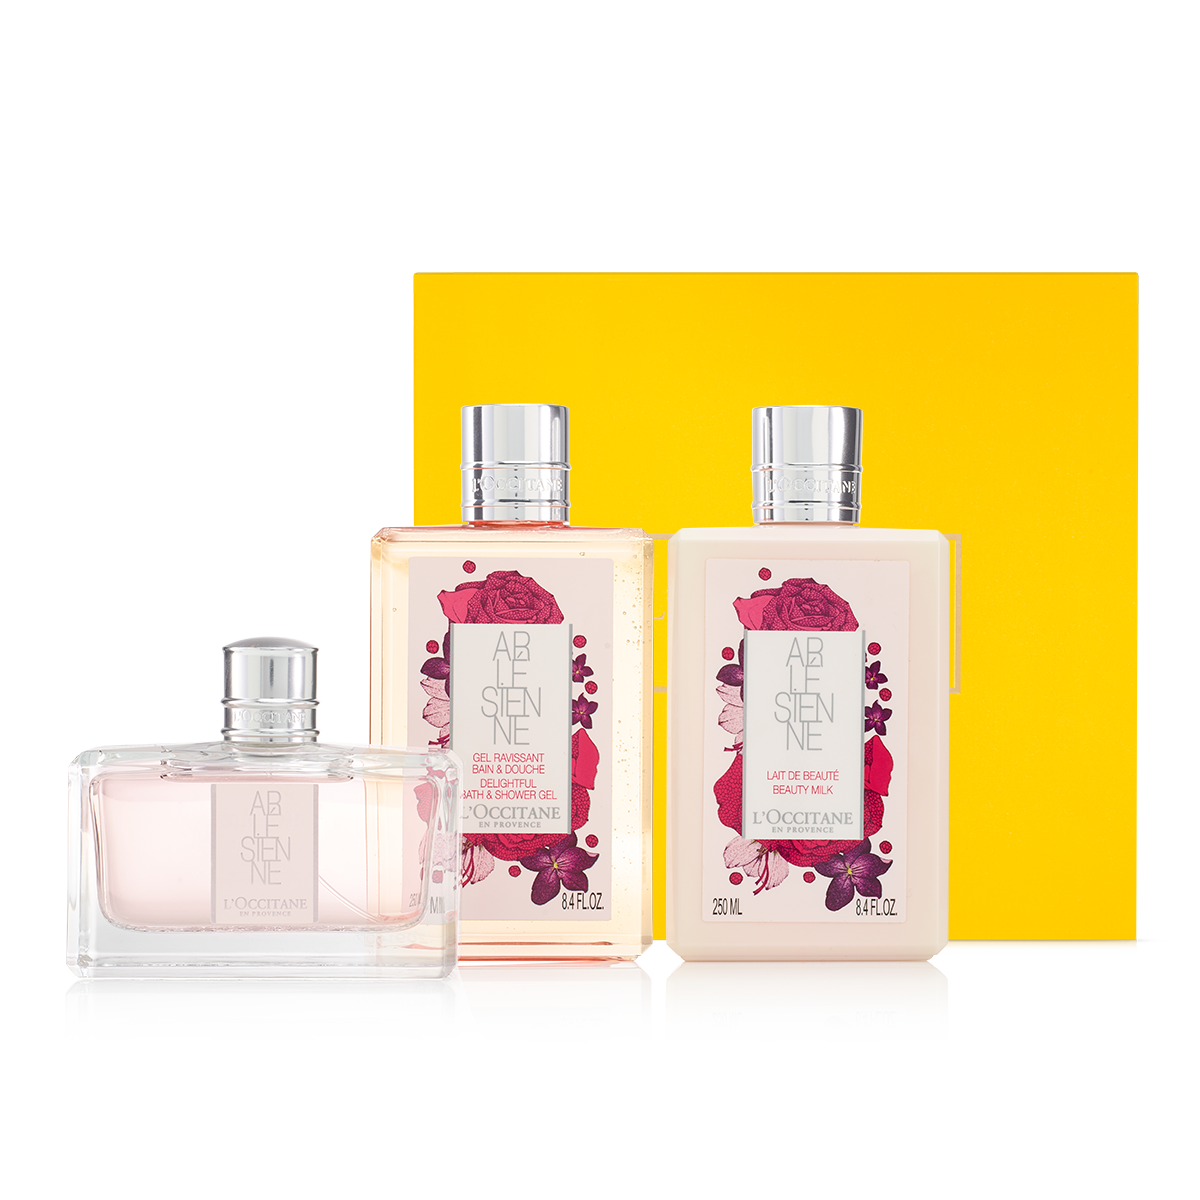 Arlésienne Fragrance Collection - L'Occitane